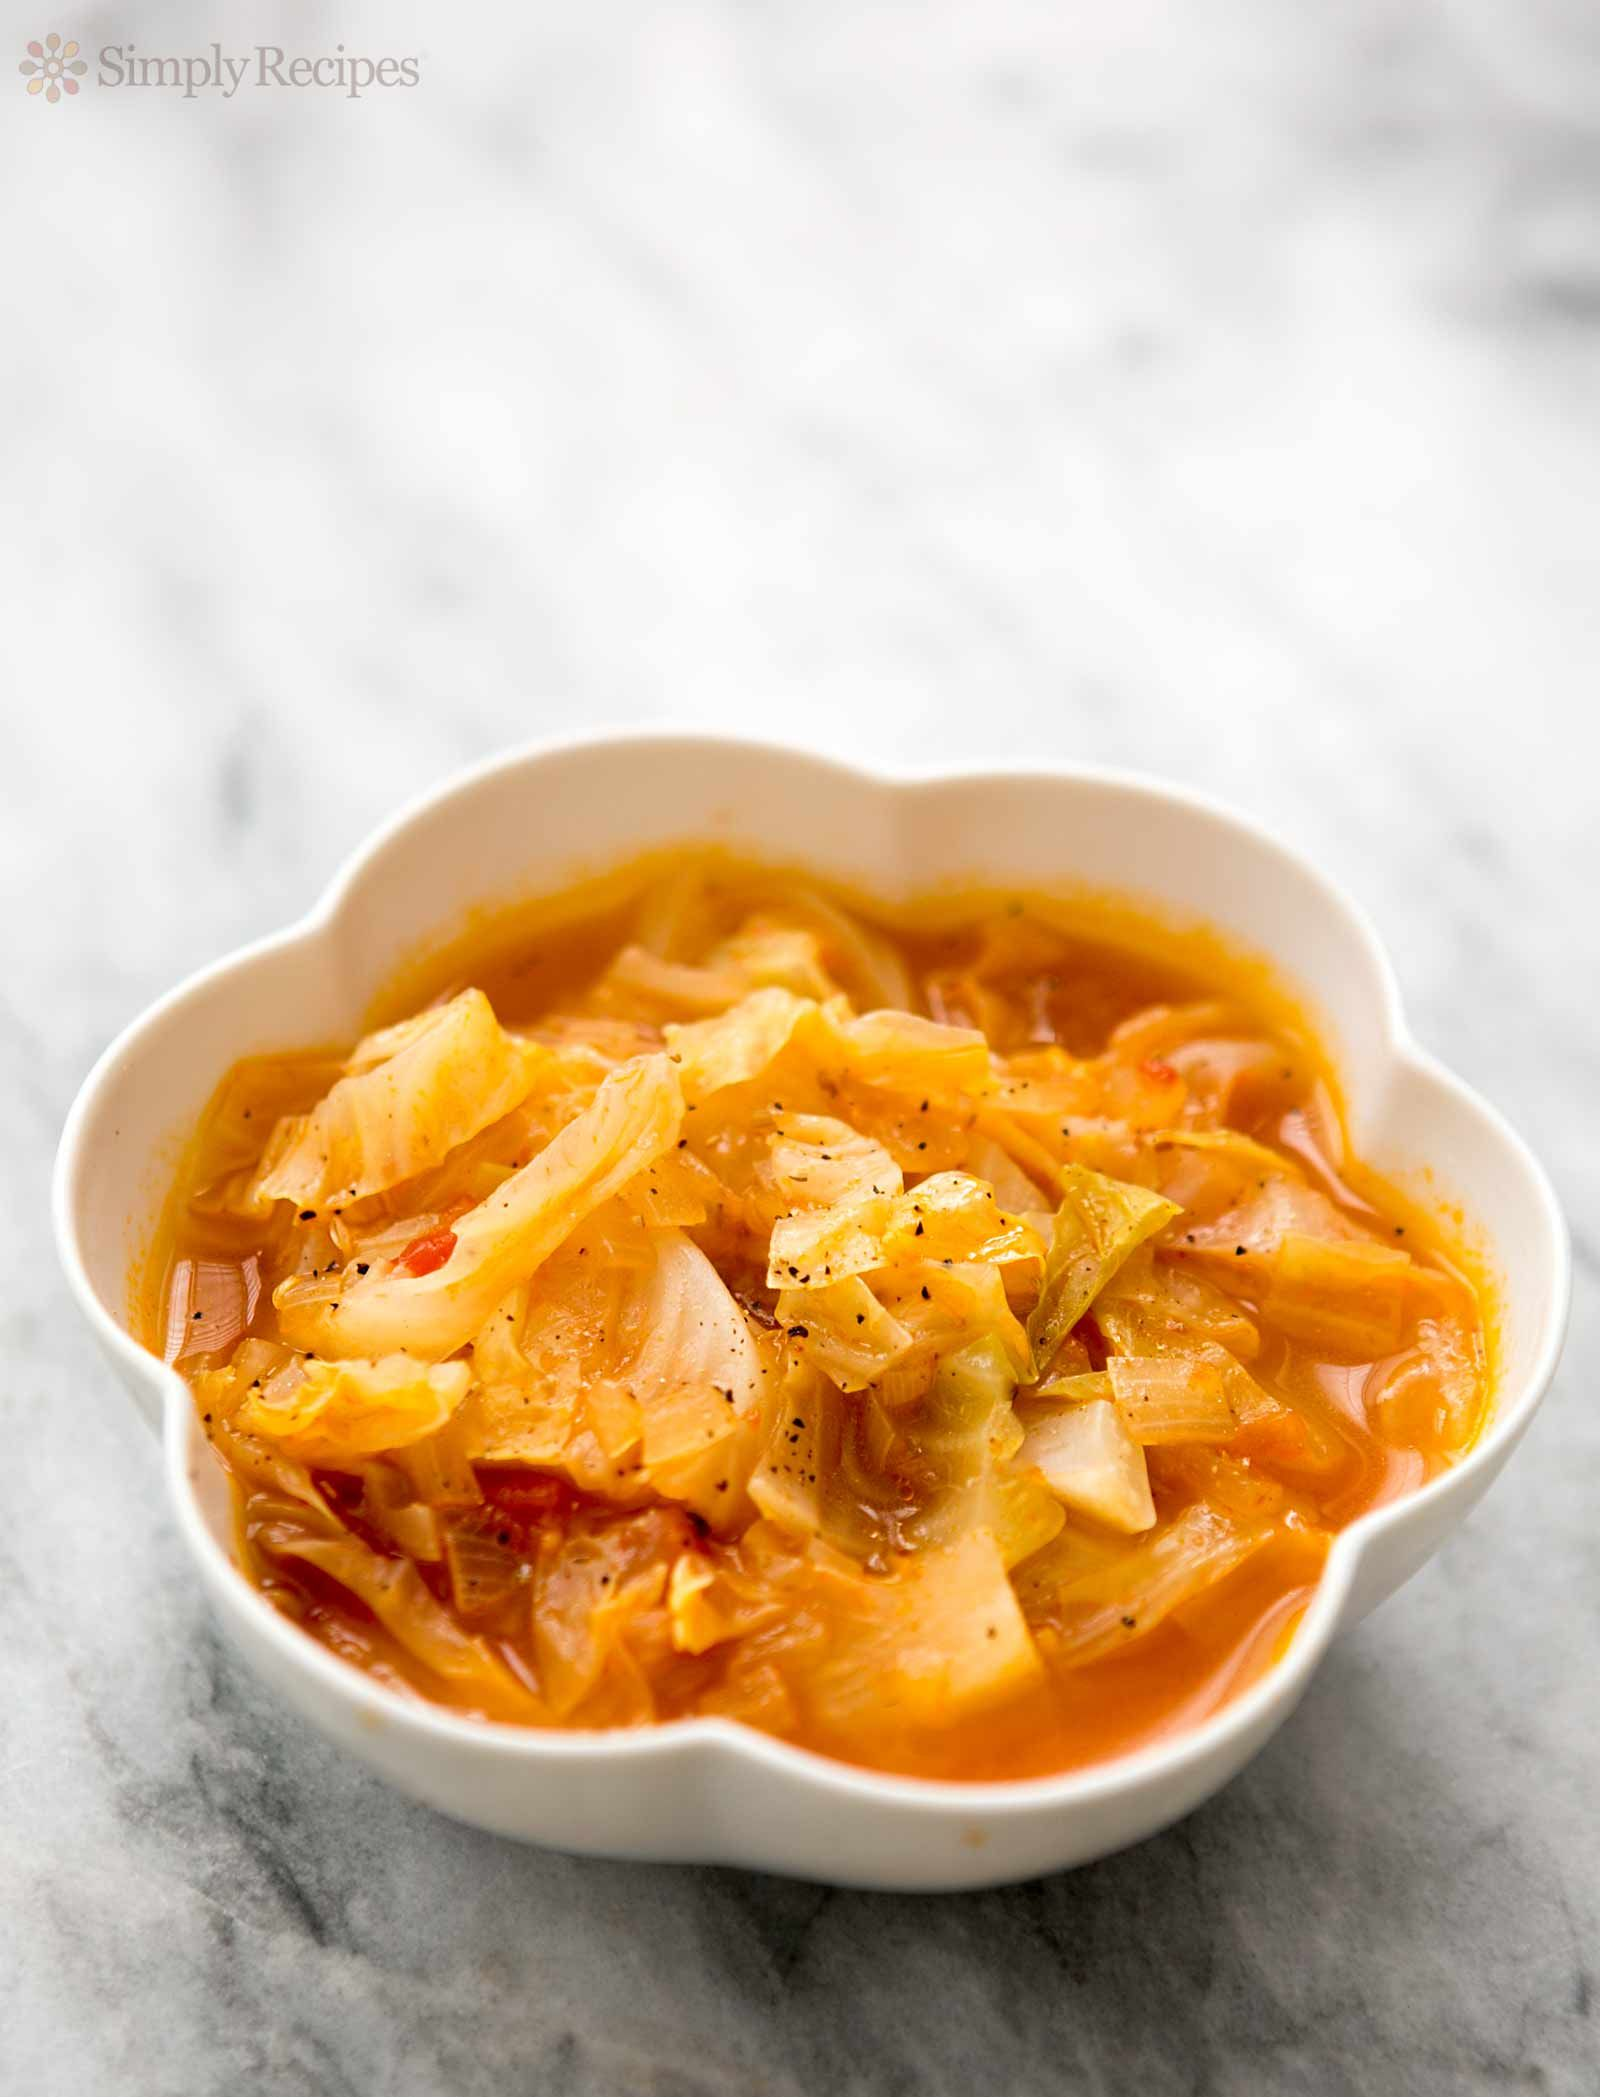 Cabbage Soup A Simple Healthy Nourishing Soup With Cabbage